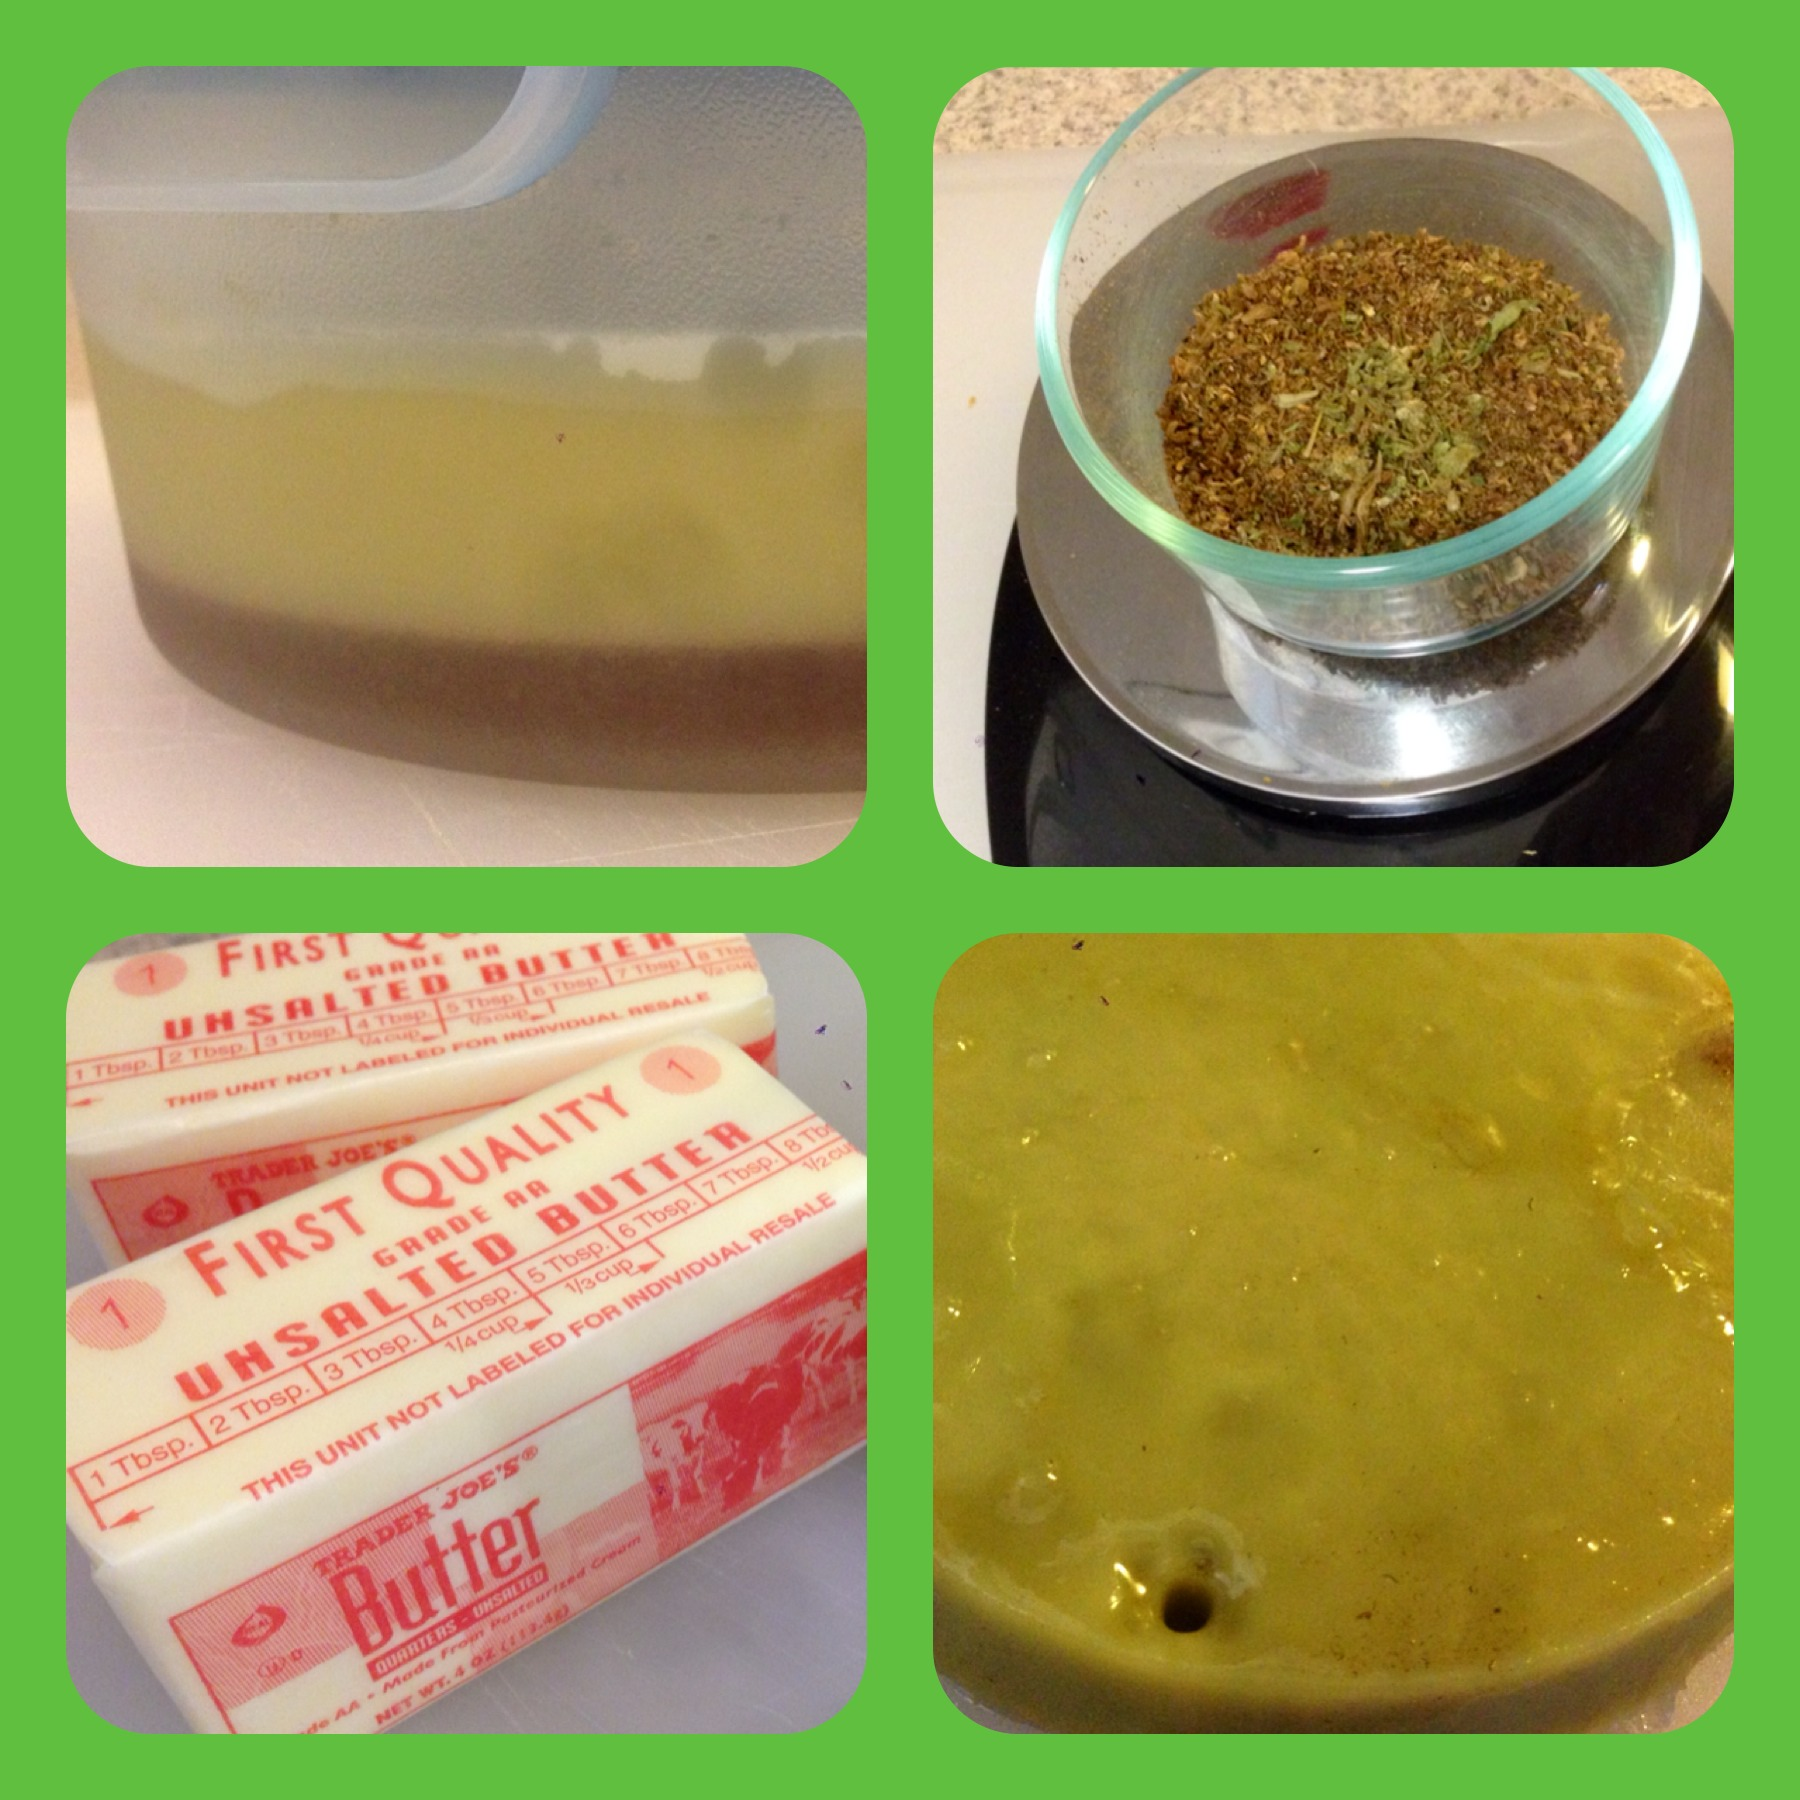 Picture of Cannabis Butter From Vaporizer Leftovers